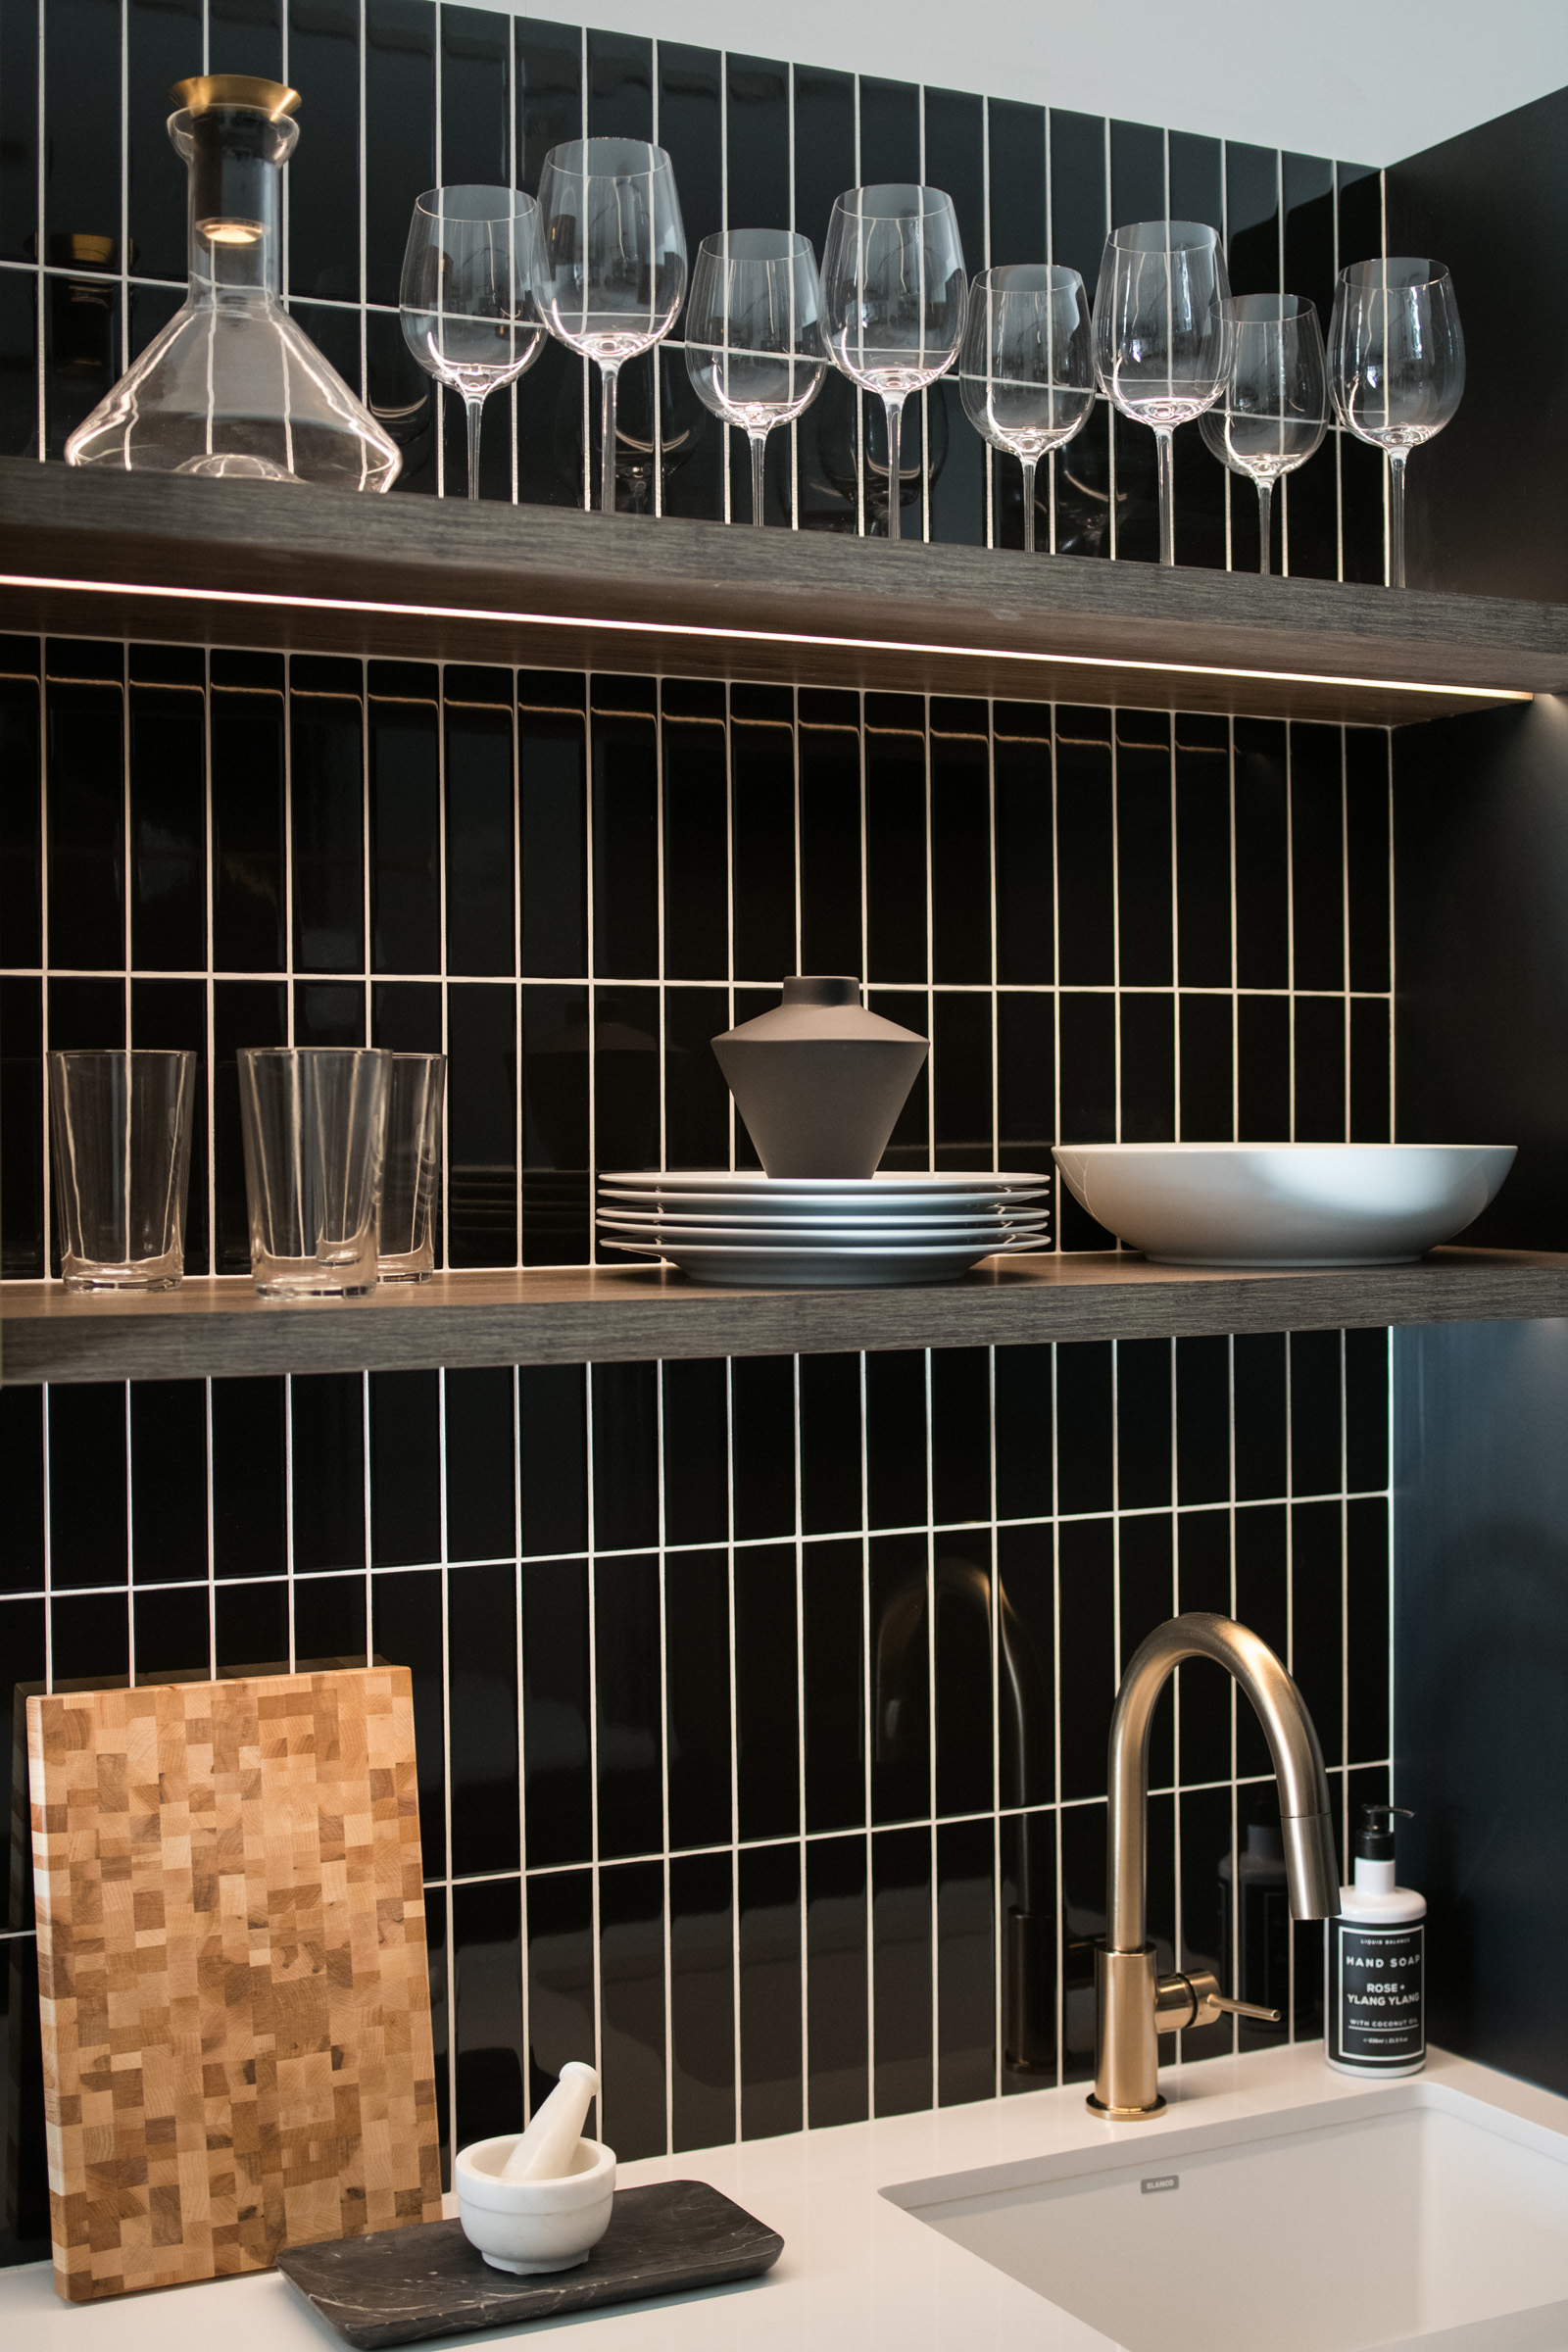 The Poet kitchen shelving with black subway tile backsplash and gold faucet